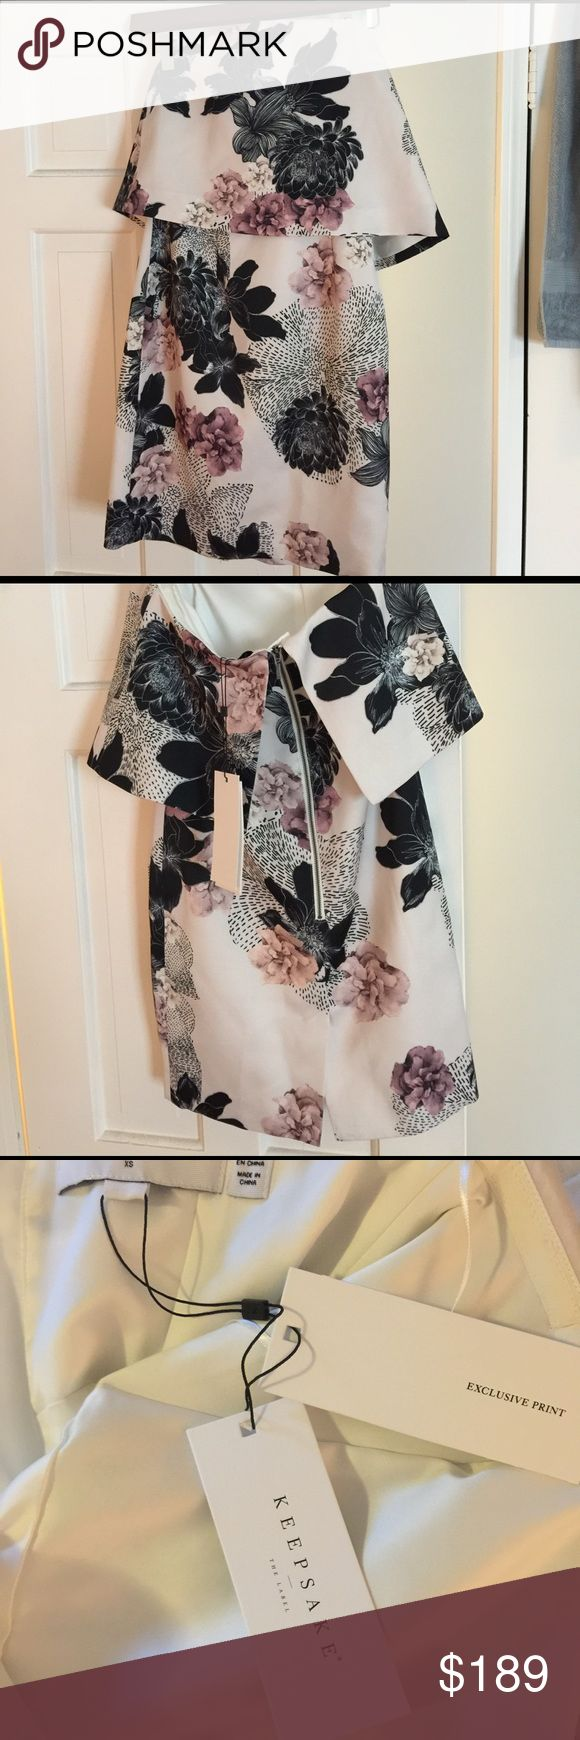 """Keepsake the label """"keep watch"""" dress New with tags - keepsake the label """"keep watch"""" dress. Strapless with layered top. Ivory with exclusive floral pattern. Exposed zipper in the back. KEEPSAKE the Label Dresses Strapless"""